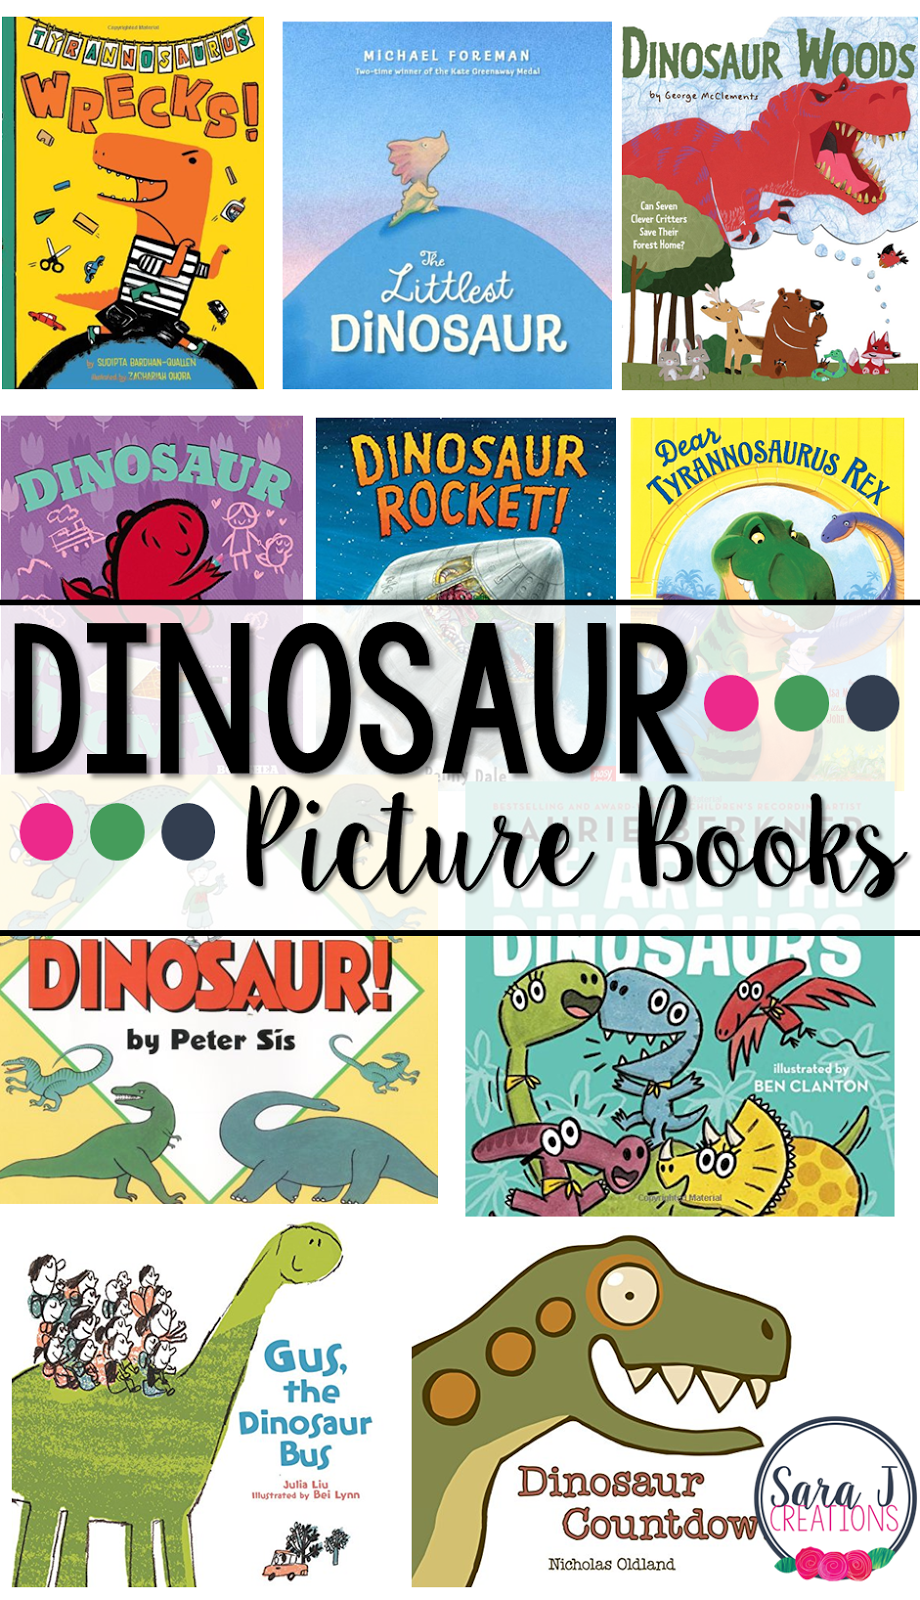 10 Dinosaur books your kids will love. Have you read these picture books?